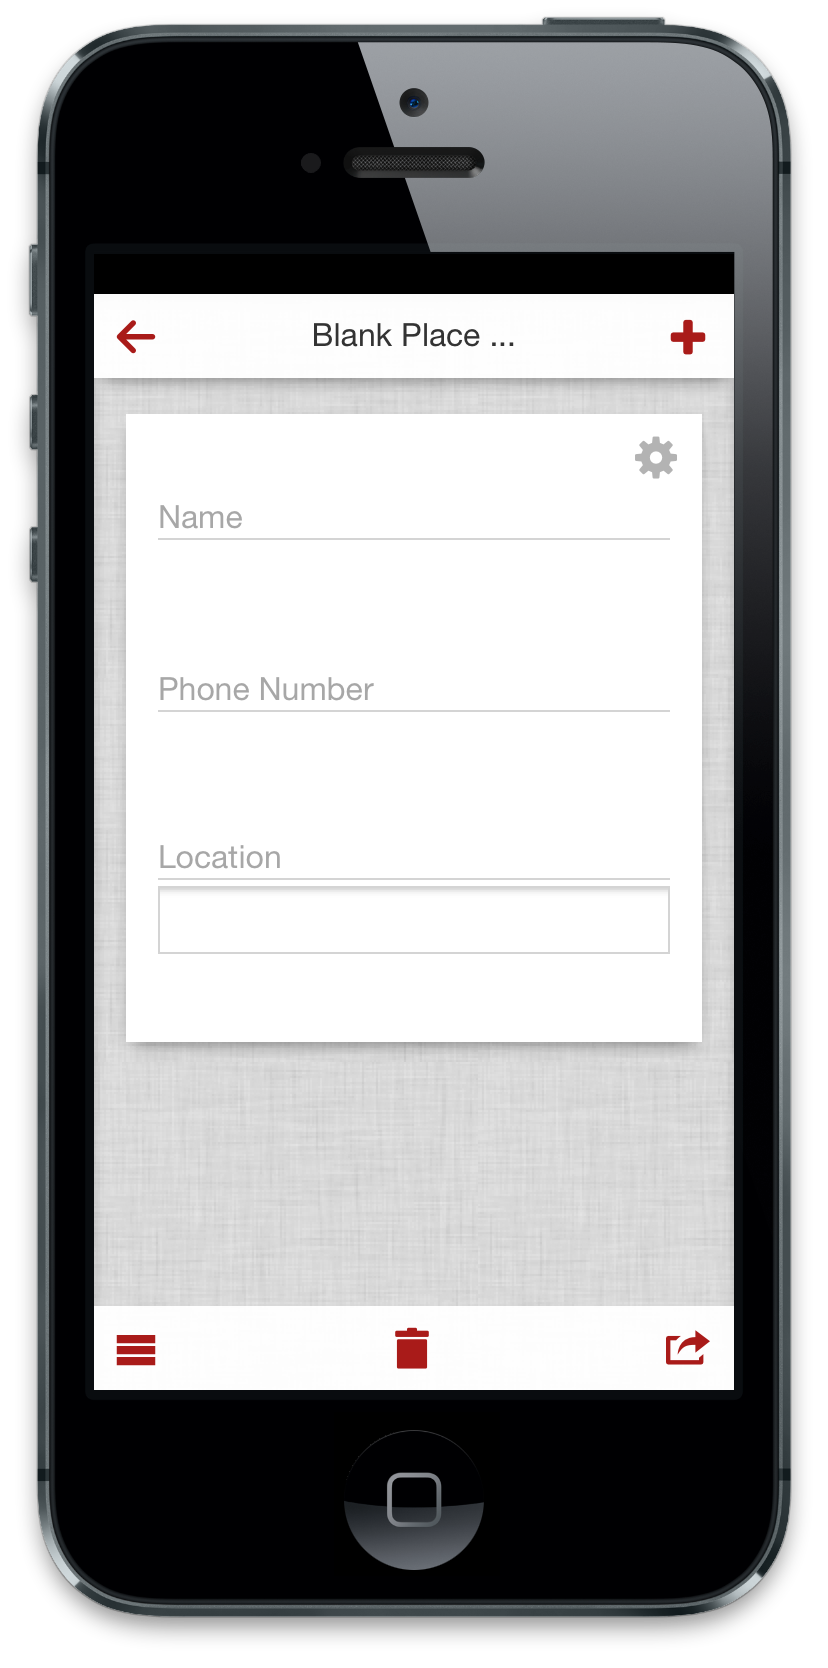 Input data from your smart phone.